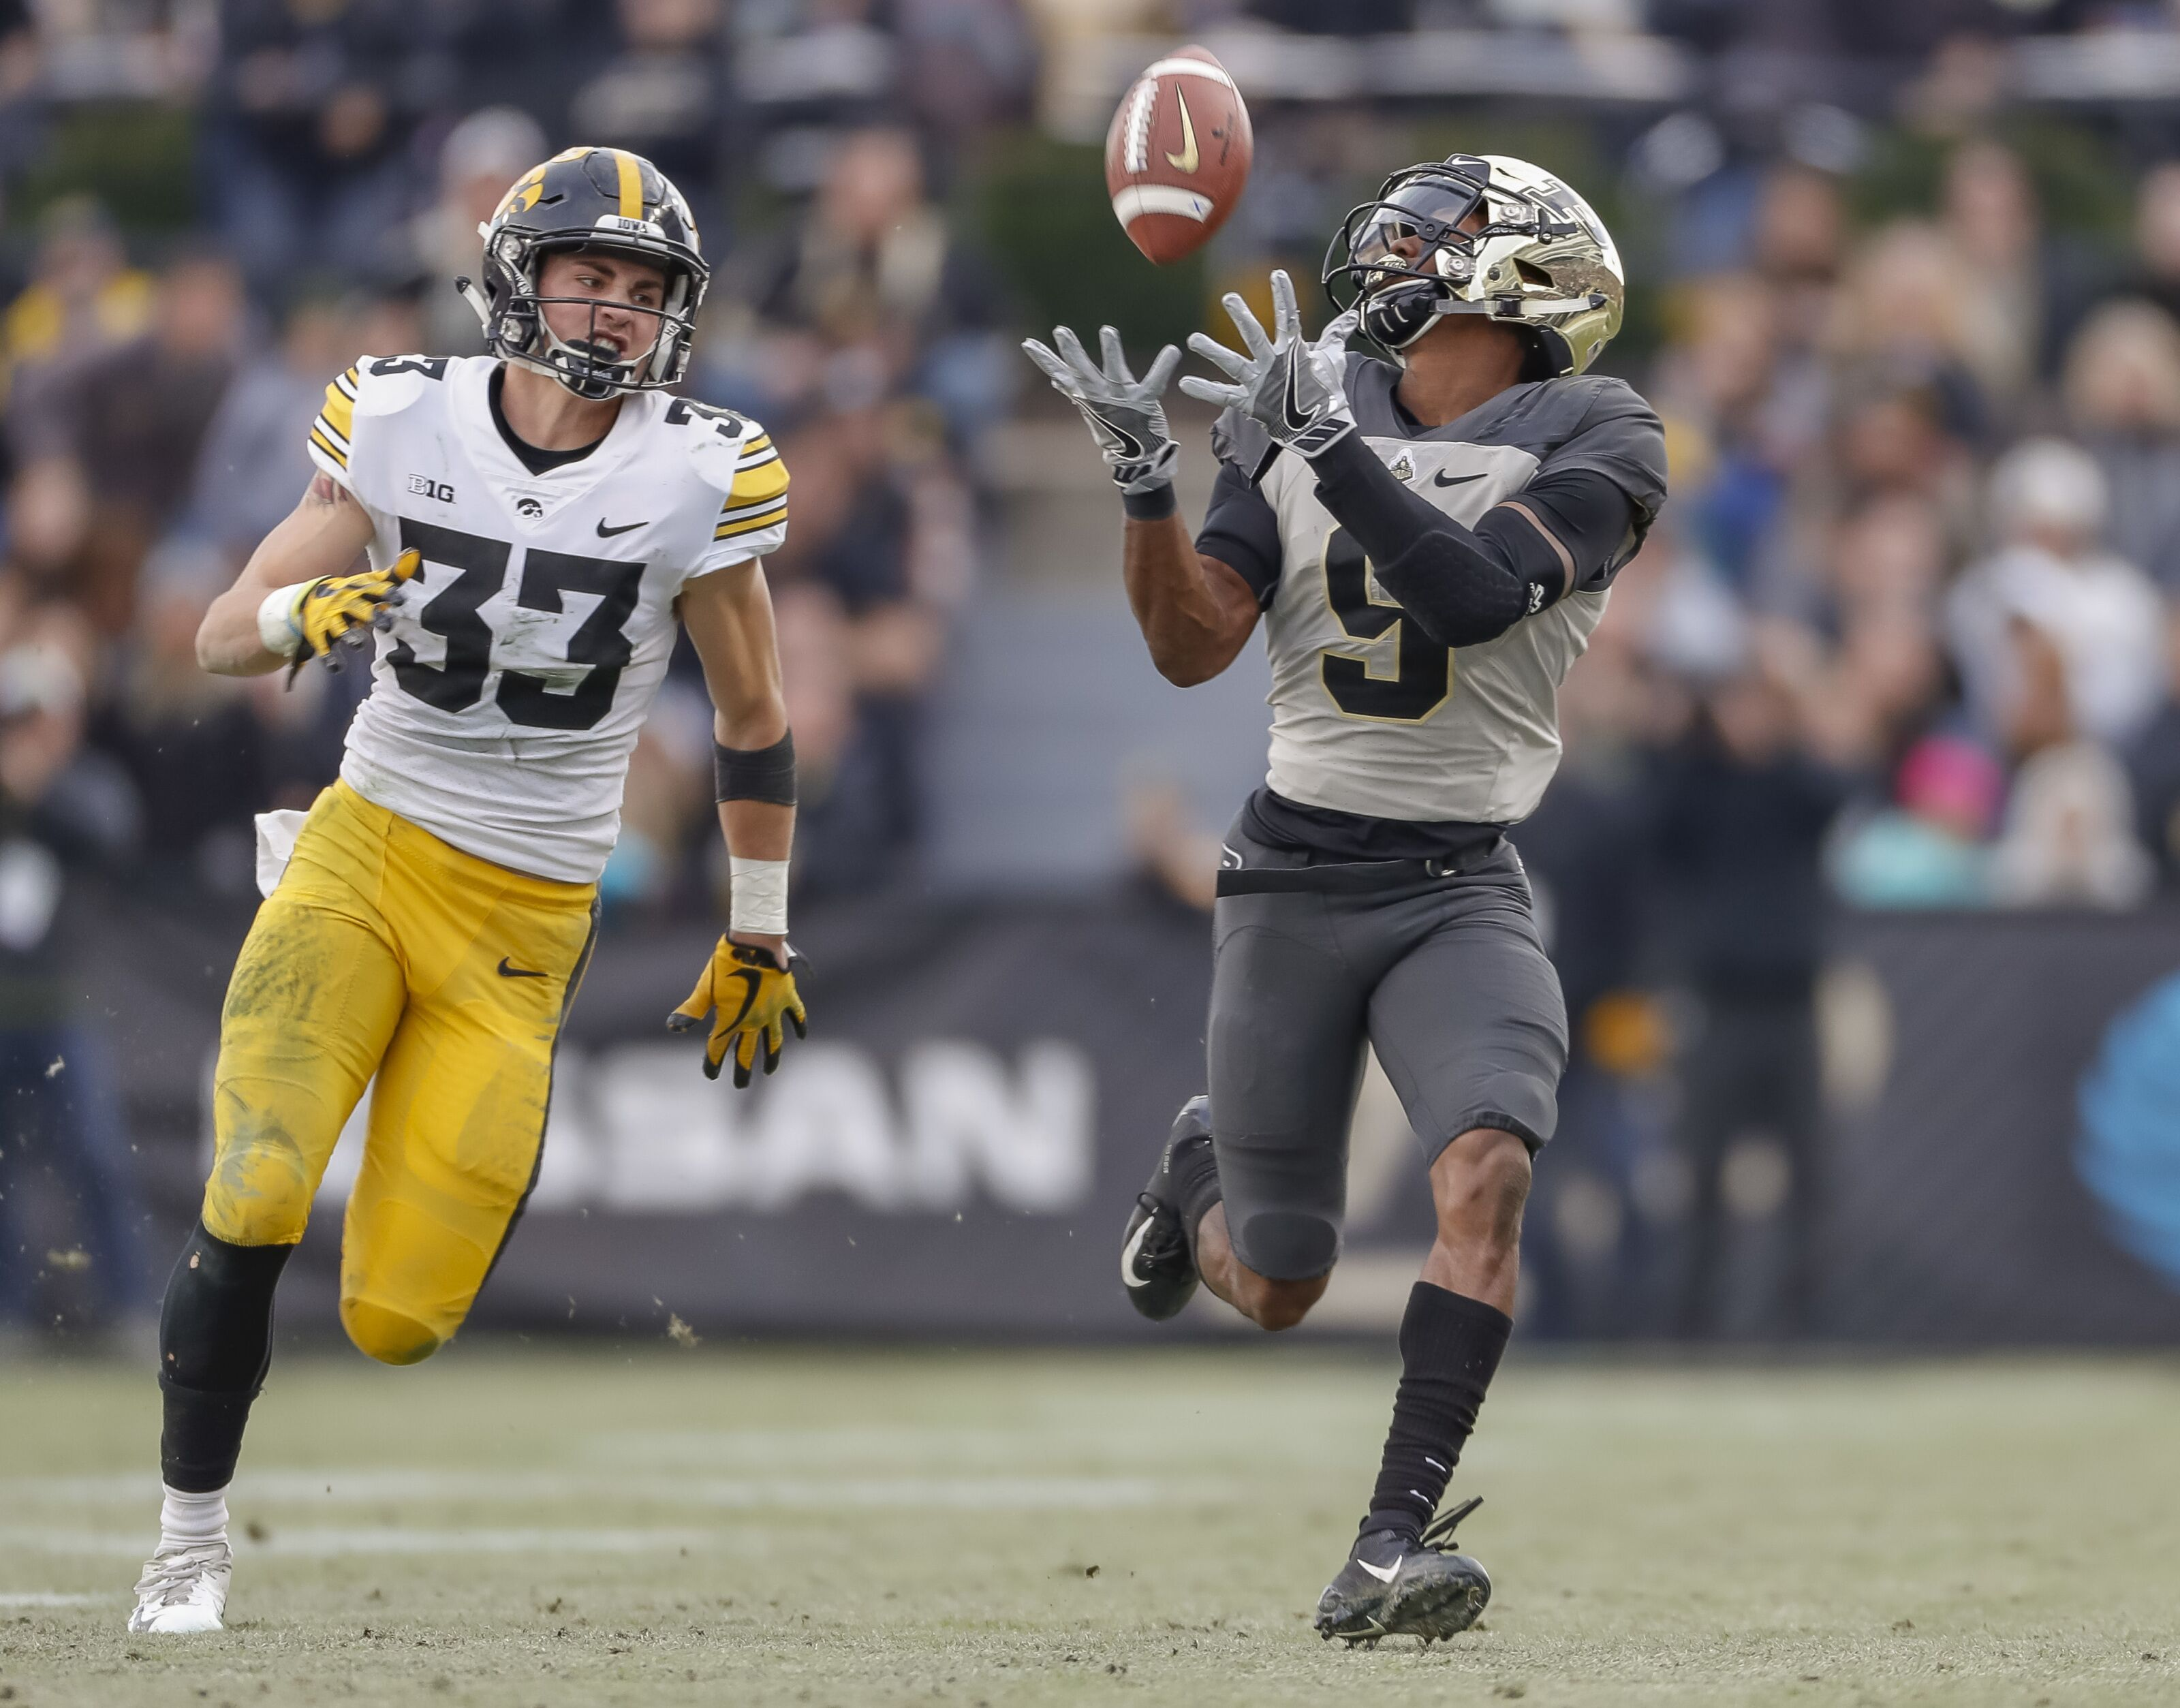 Iowa football: Historically, Purdue has had the Hawks number